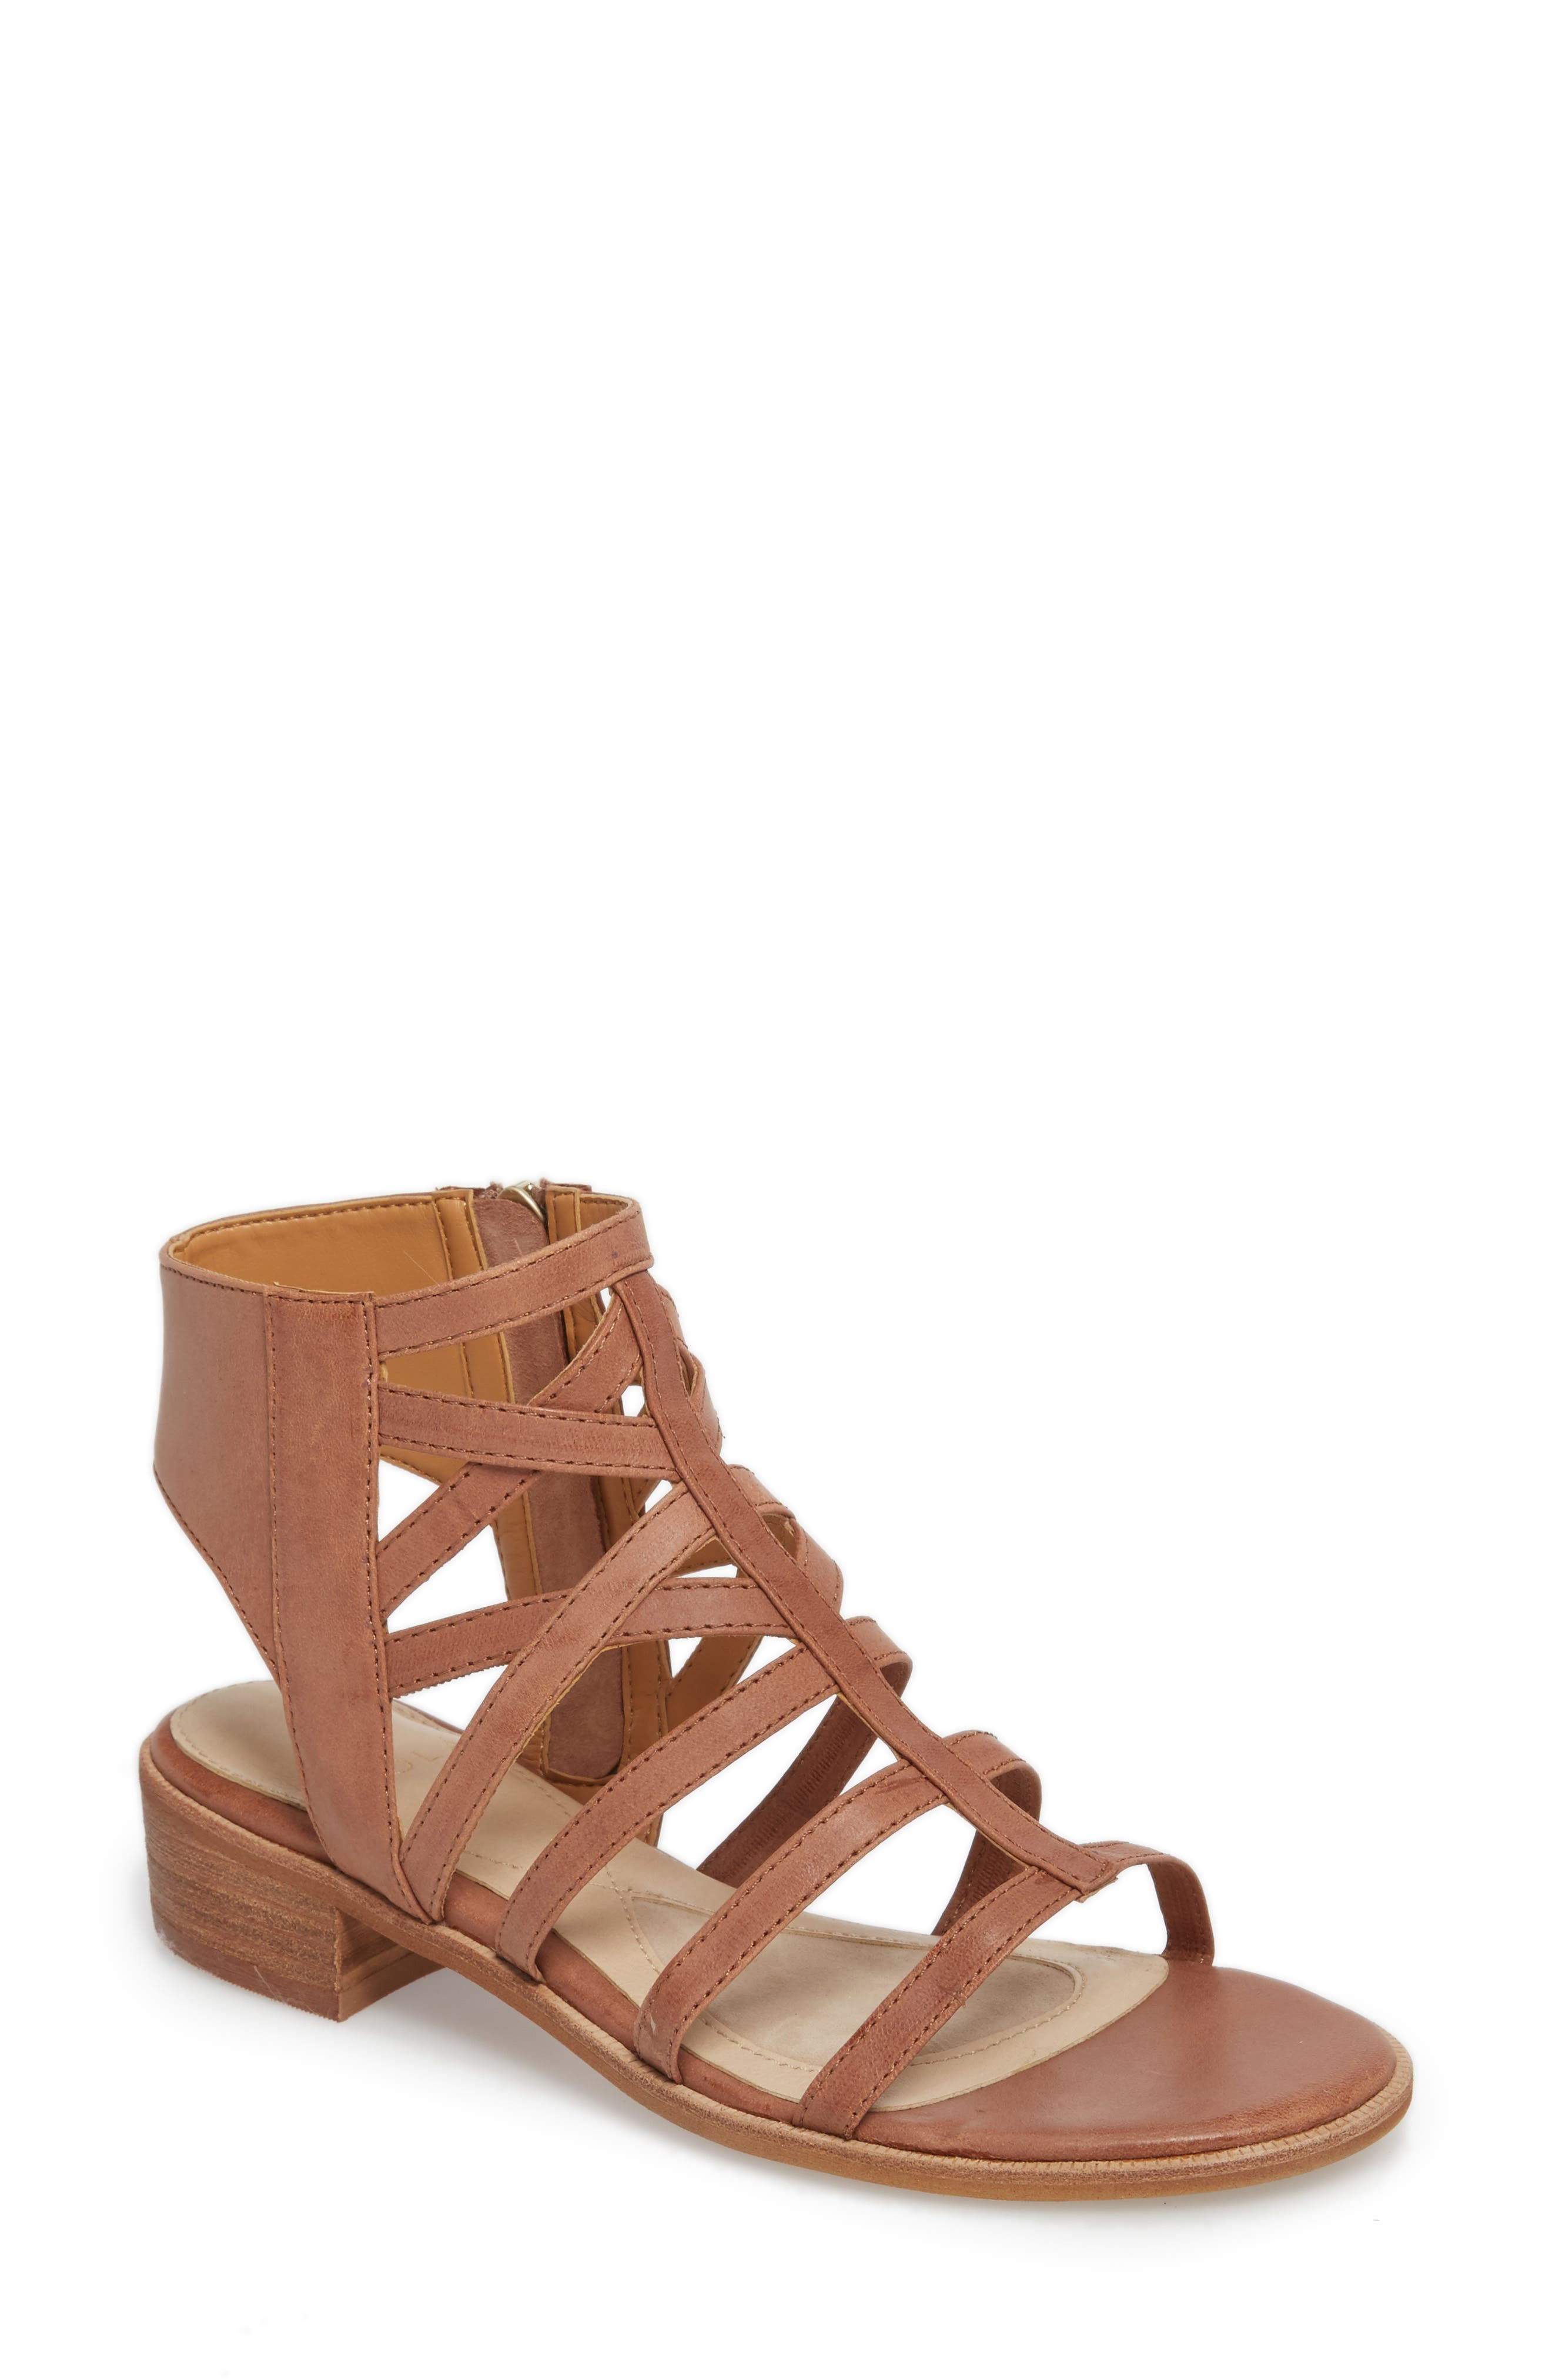 Genesis Cage Sandal,                         Main,                         color, ALMOND LEATHER